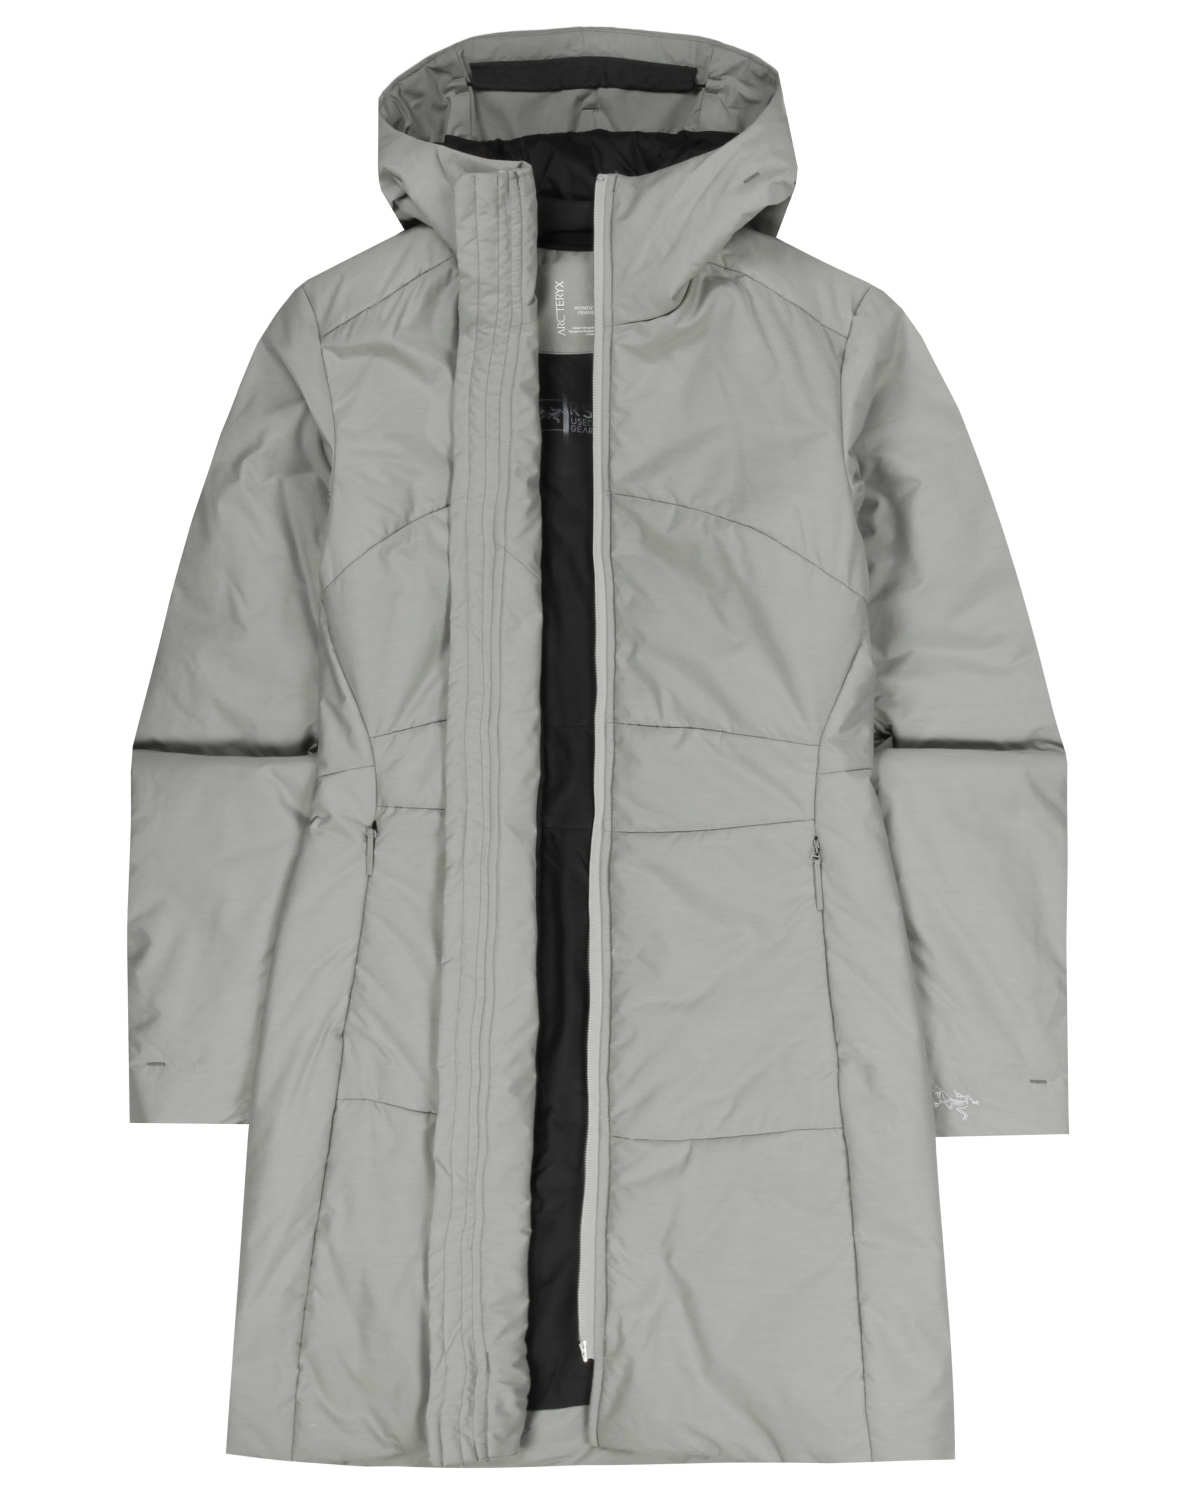 Darrah Coat Women's